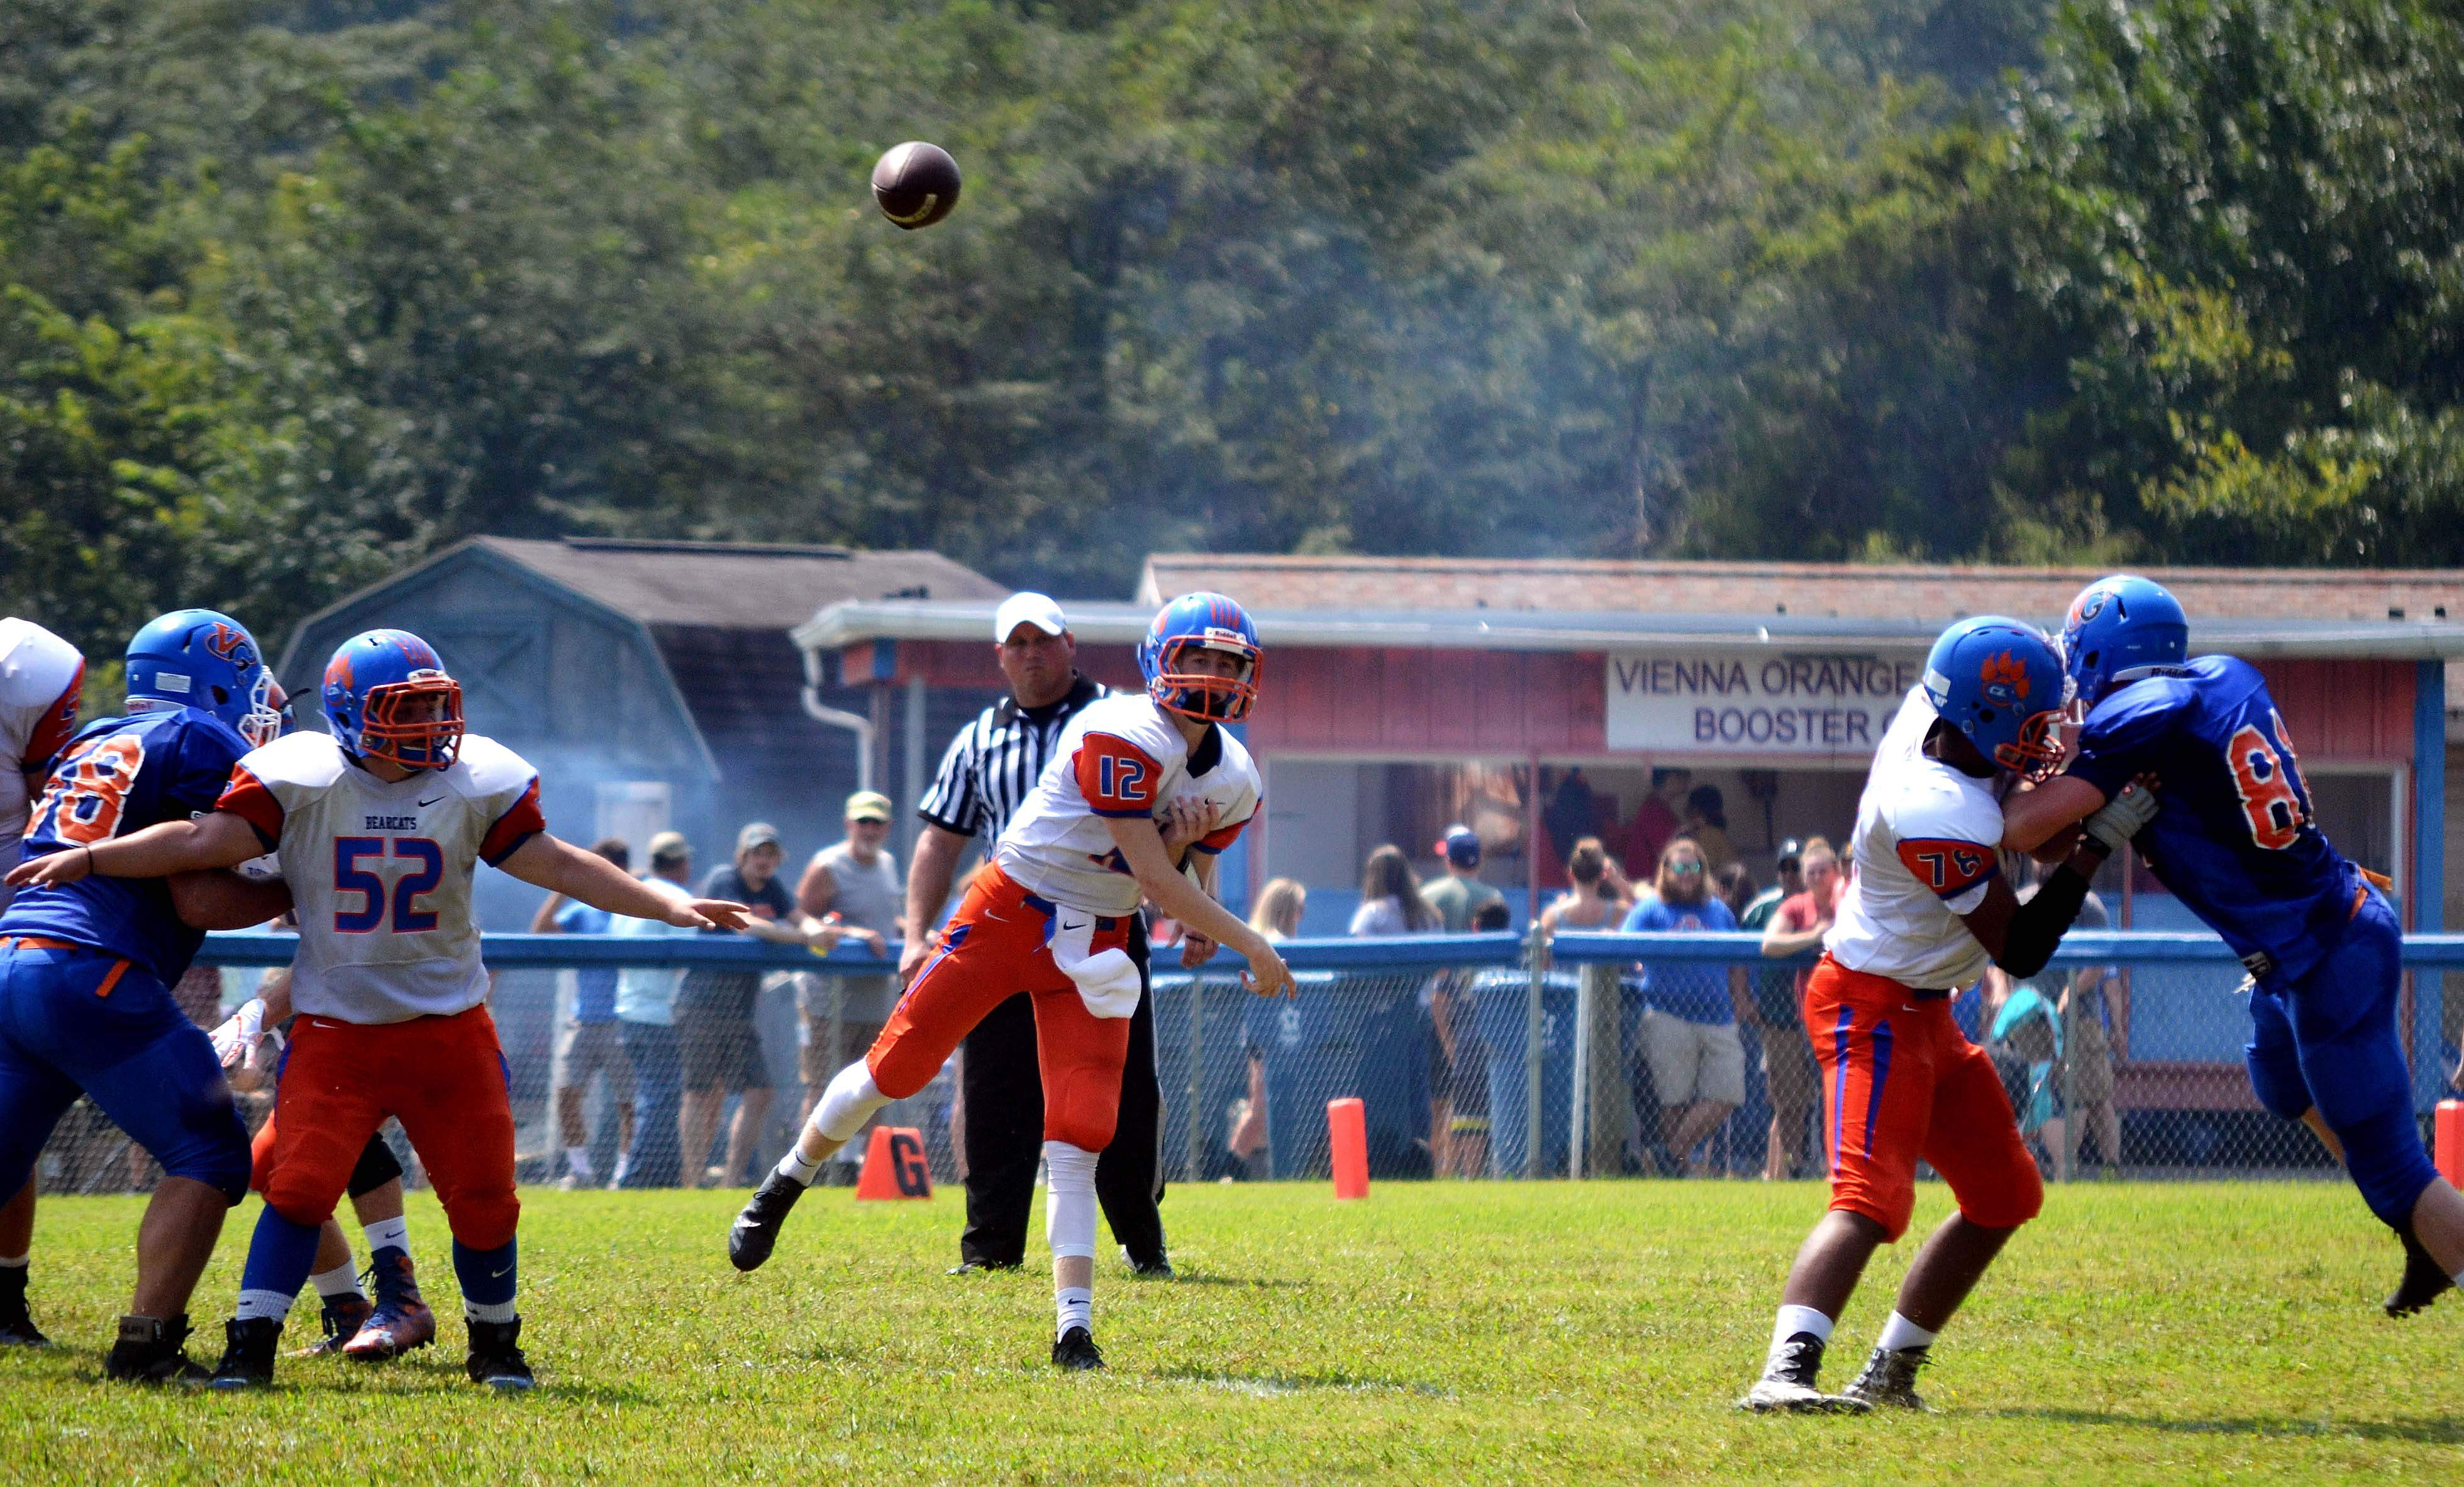 CZR junior quarterback Bryce Pratt attempts a a pass in game action Saturday afternoon at Vienna.